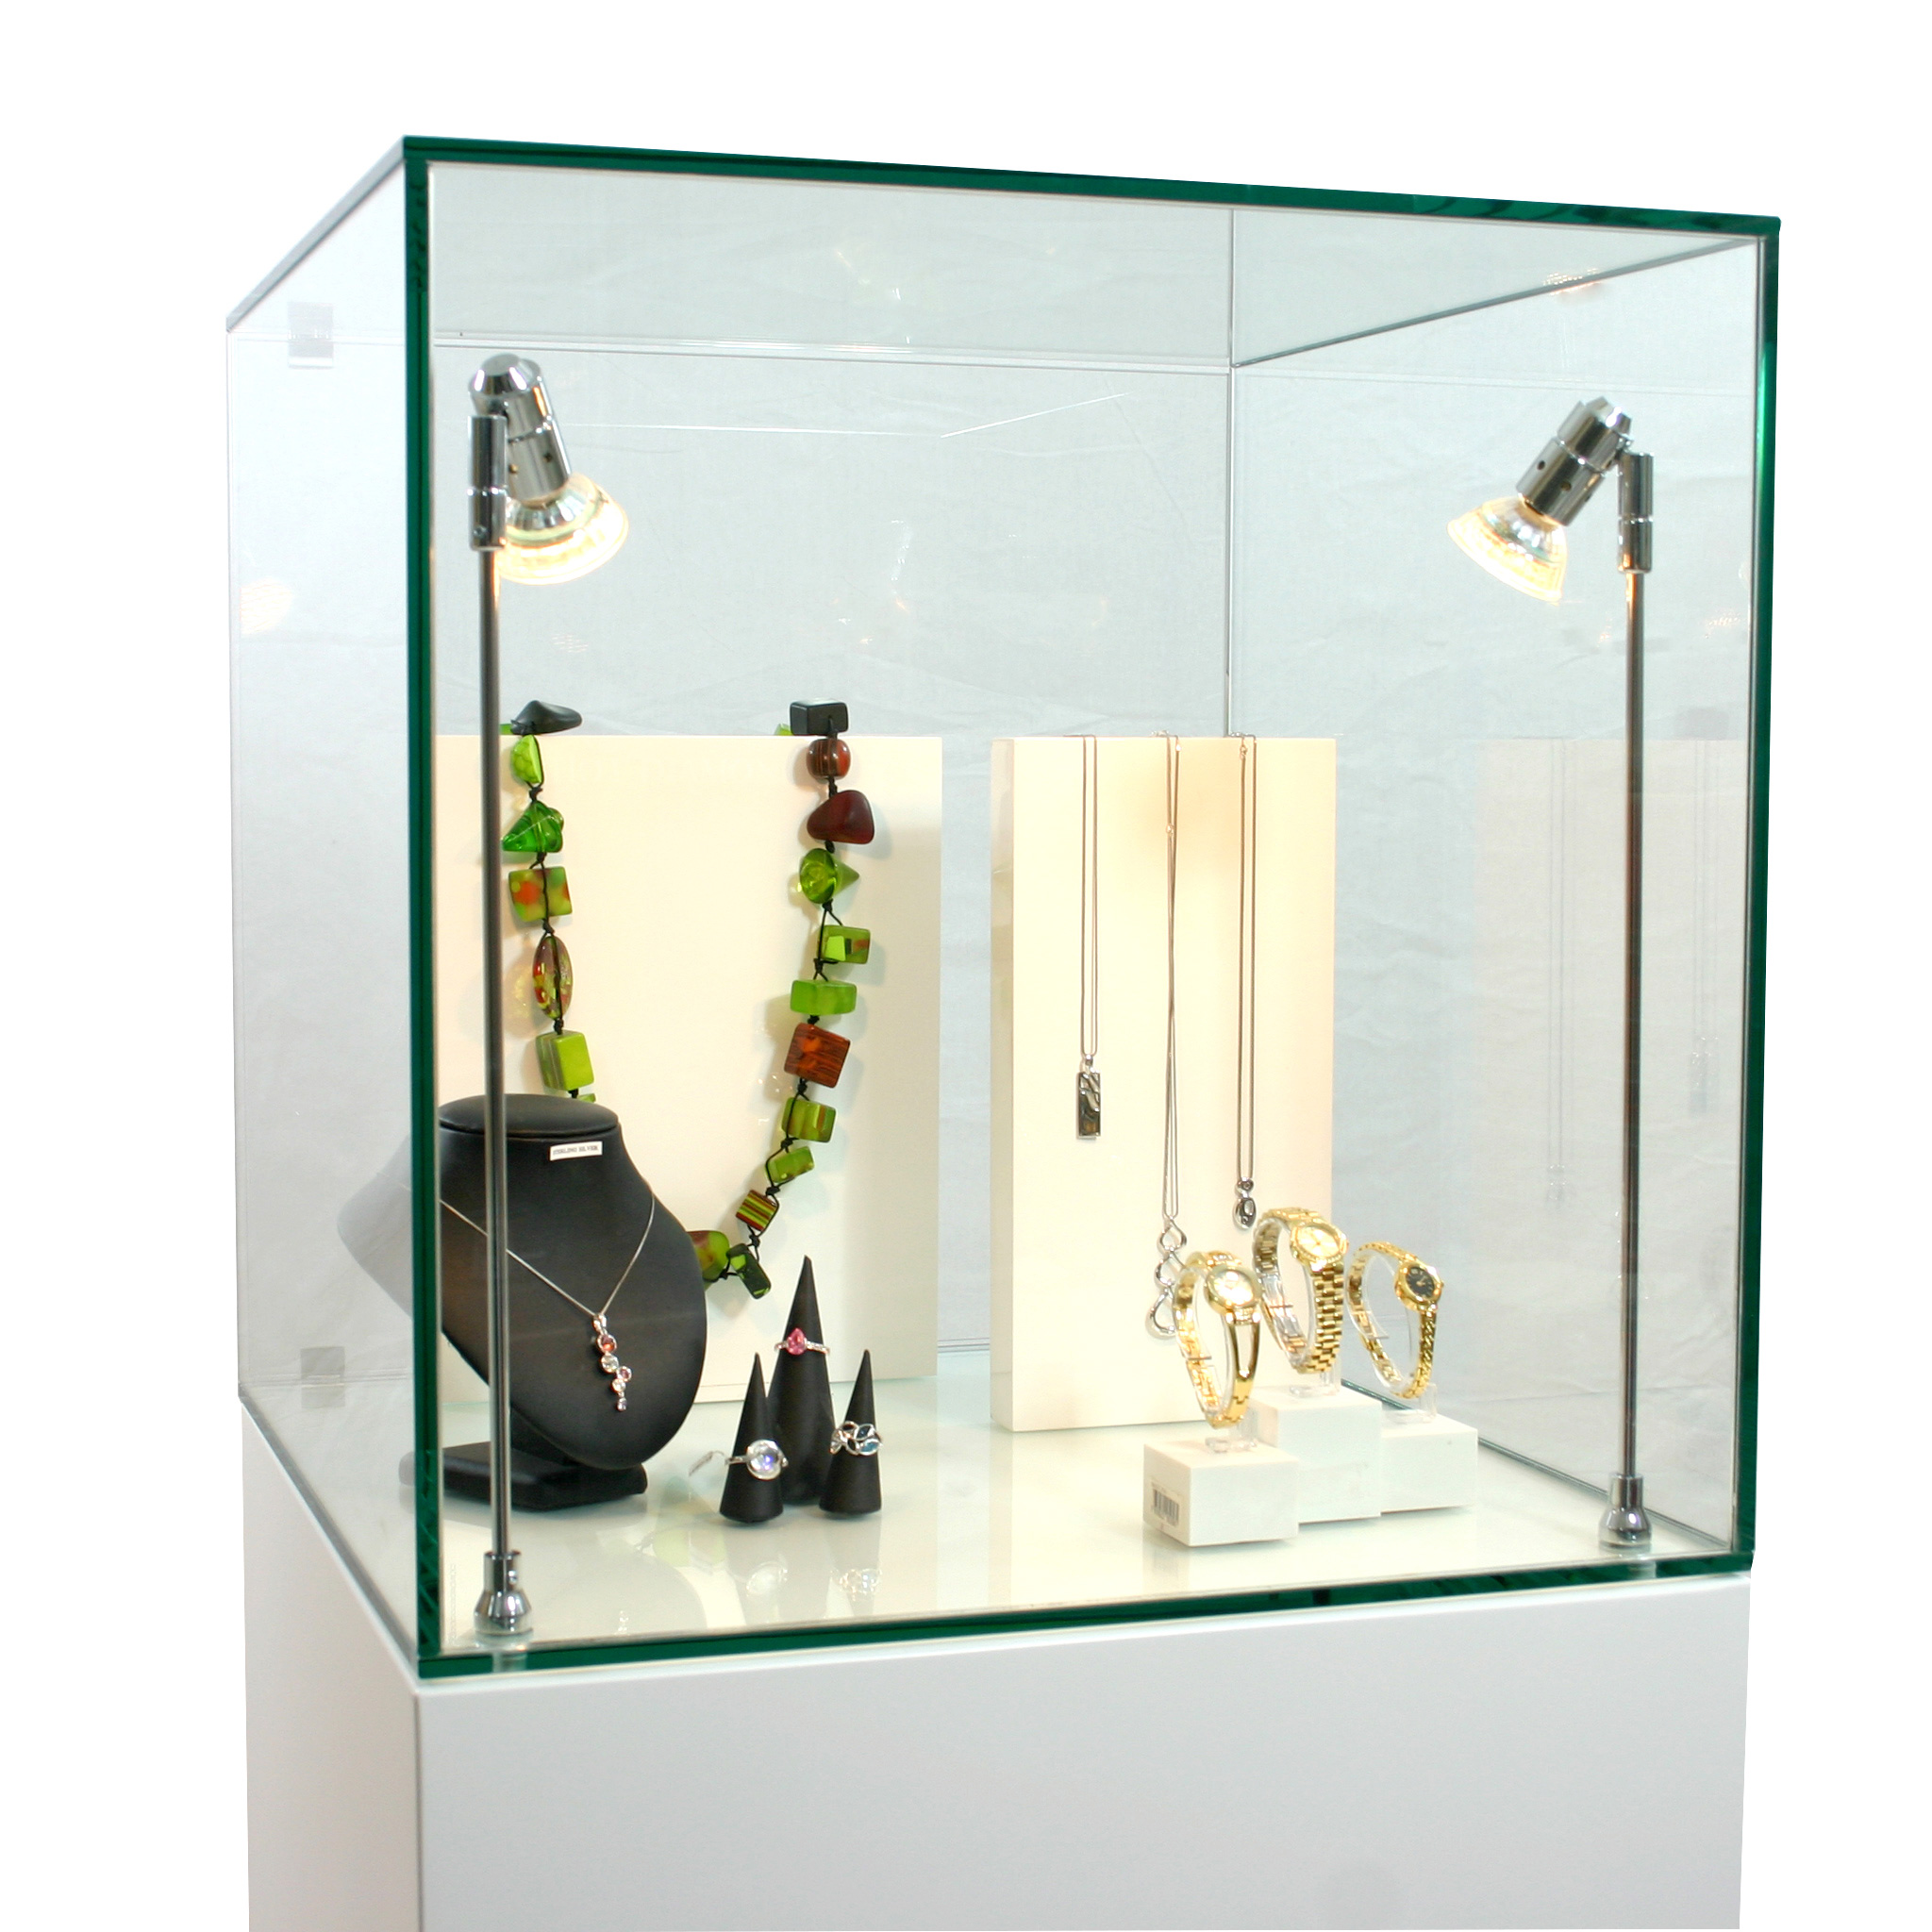 Jewelry and accessories display setting inside a 50 cm glass display case hire from Exhibition Plinths.